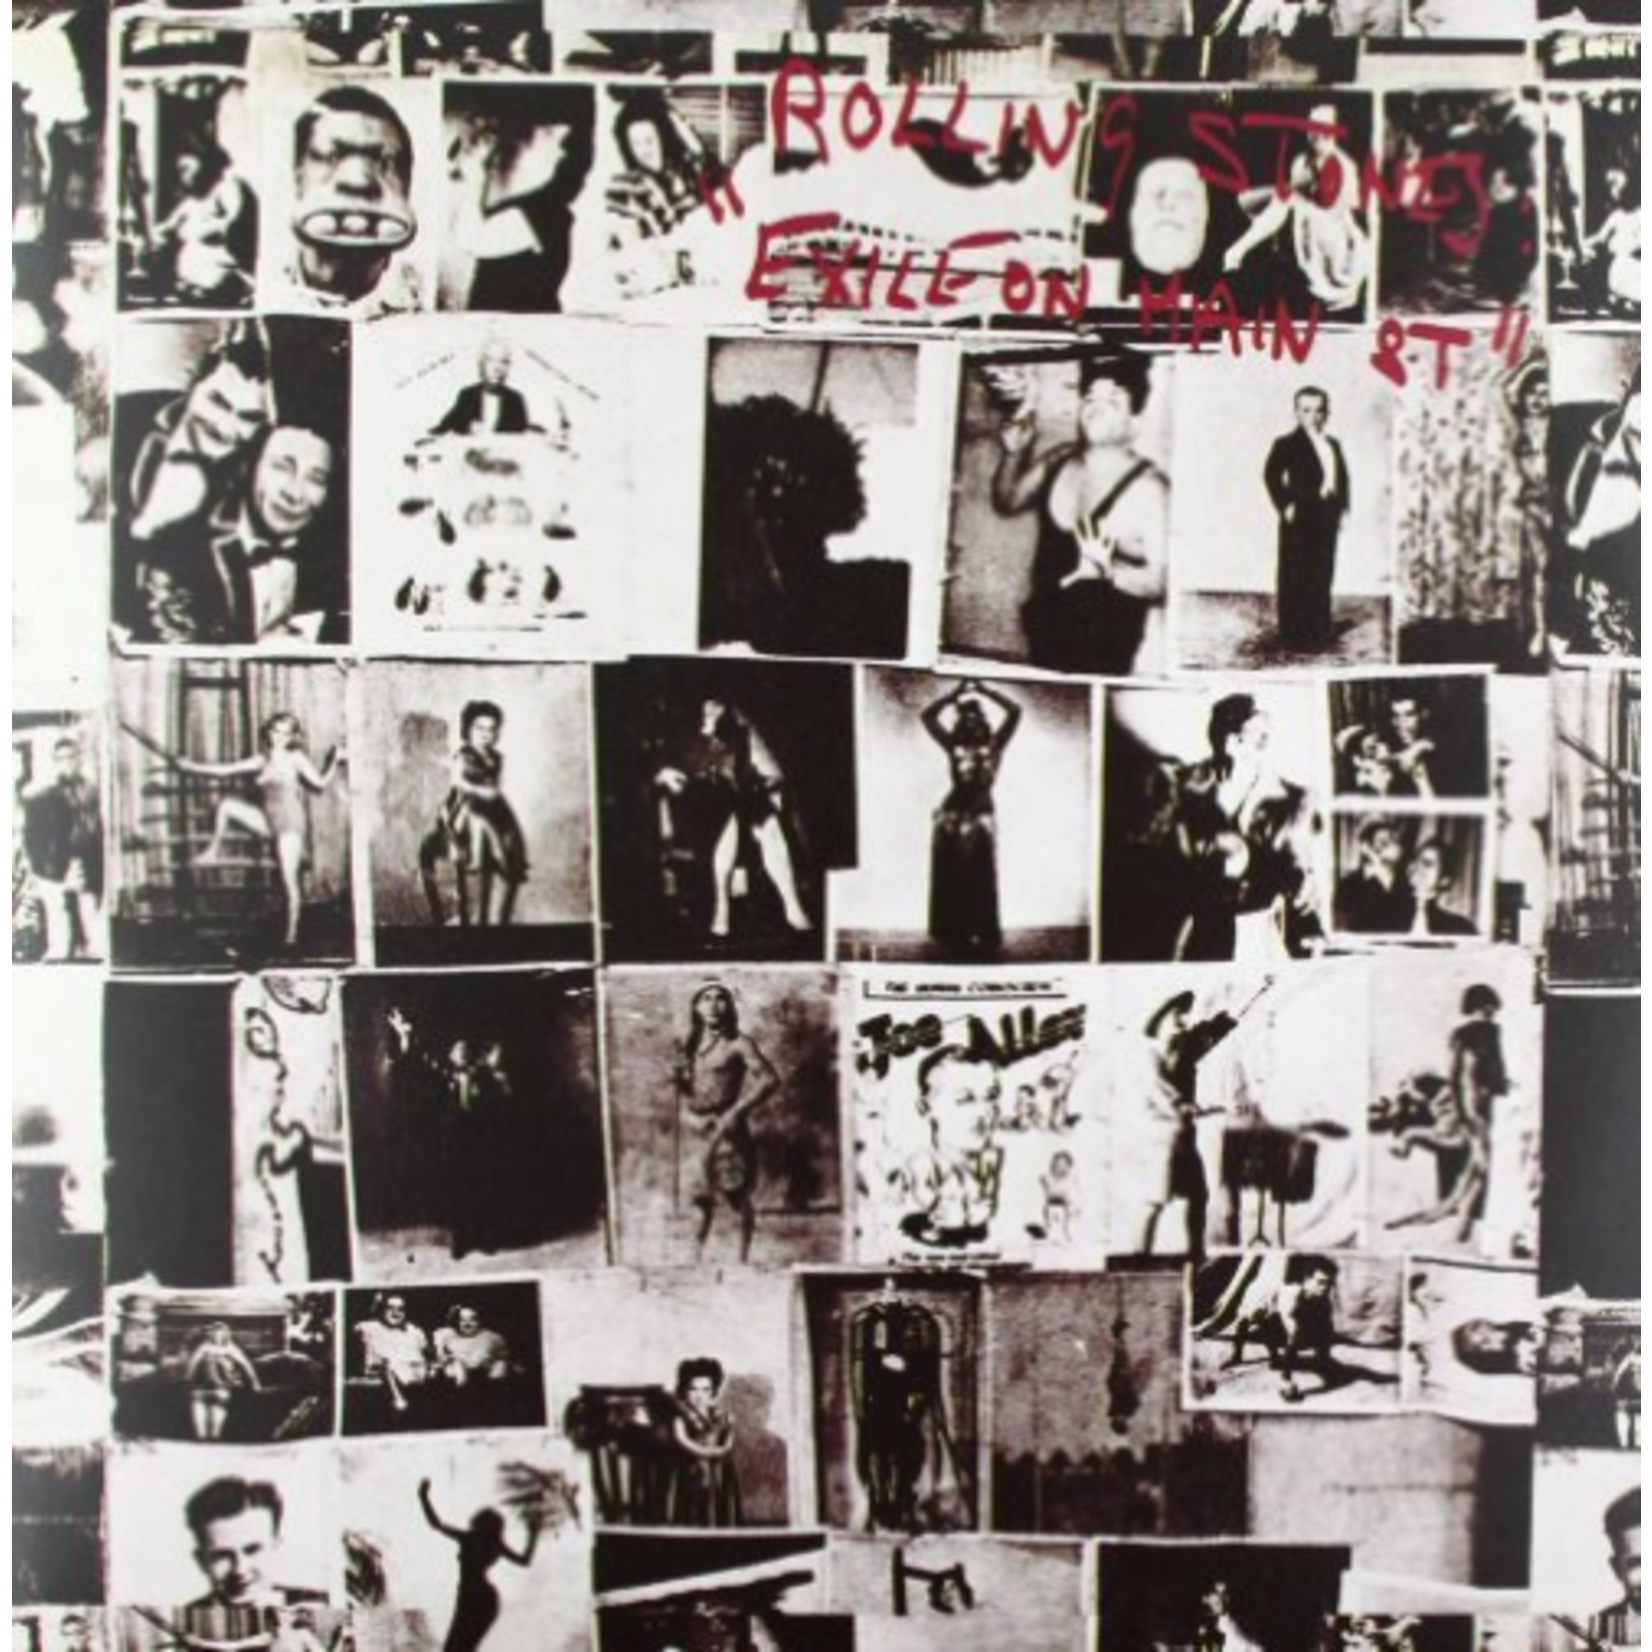 ROLLING STONES EXILE ON MAIN ST.  2LP HALF-SPEED MASTERED